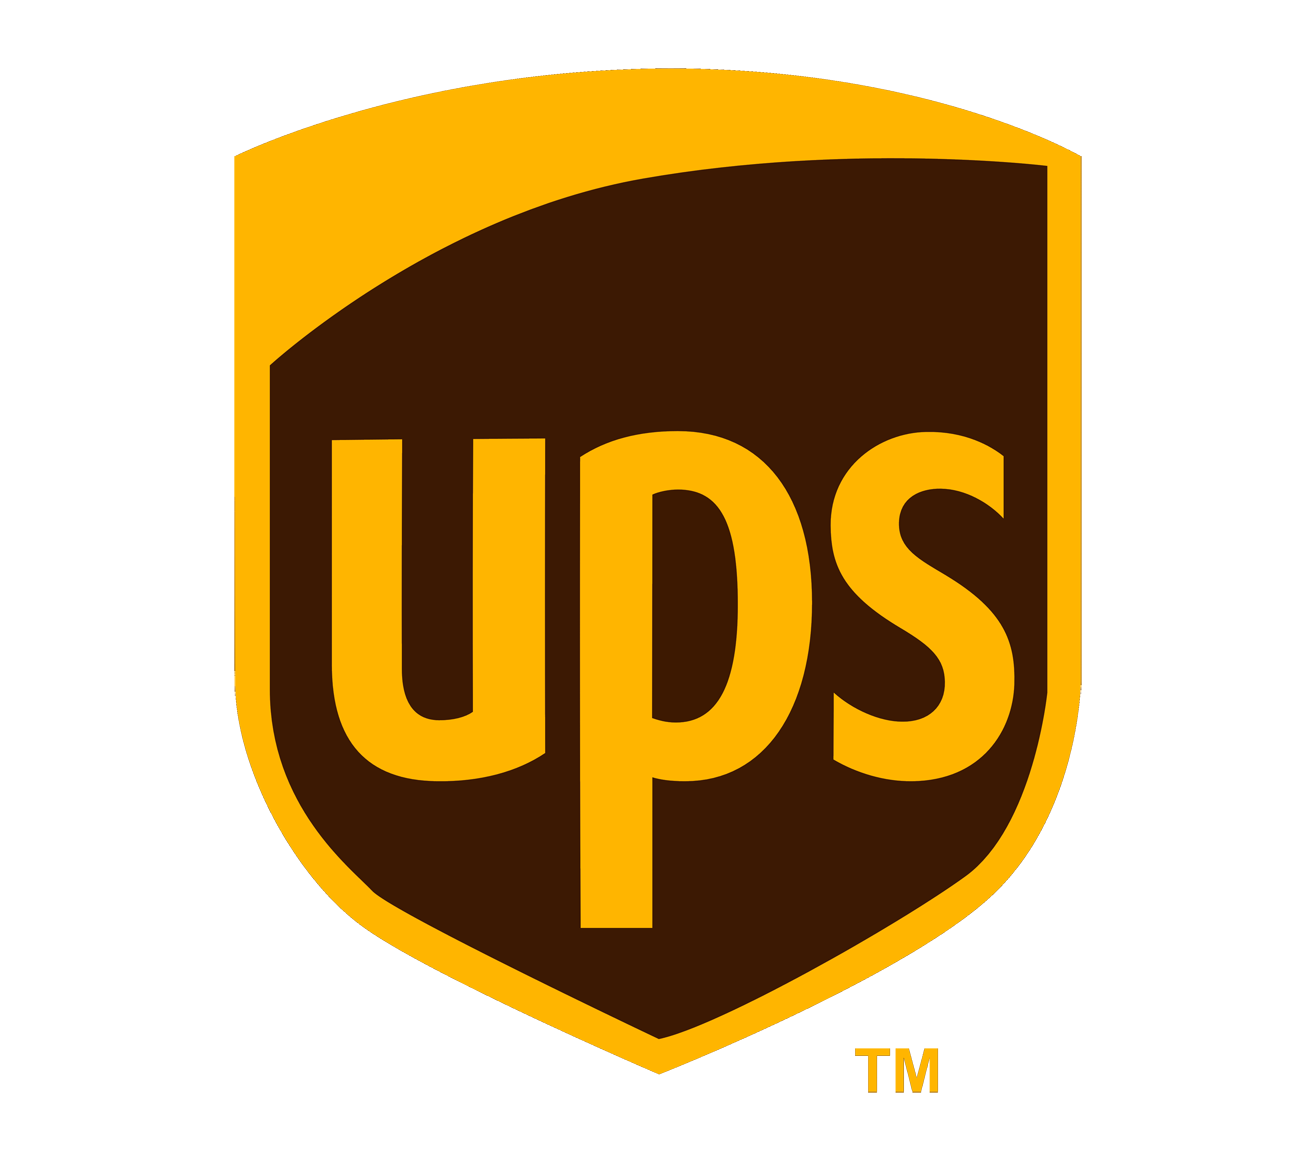 United Parcel Service logo and symbol, meaning, history, PNG